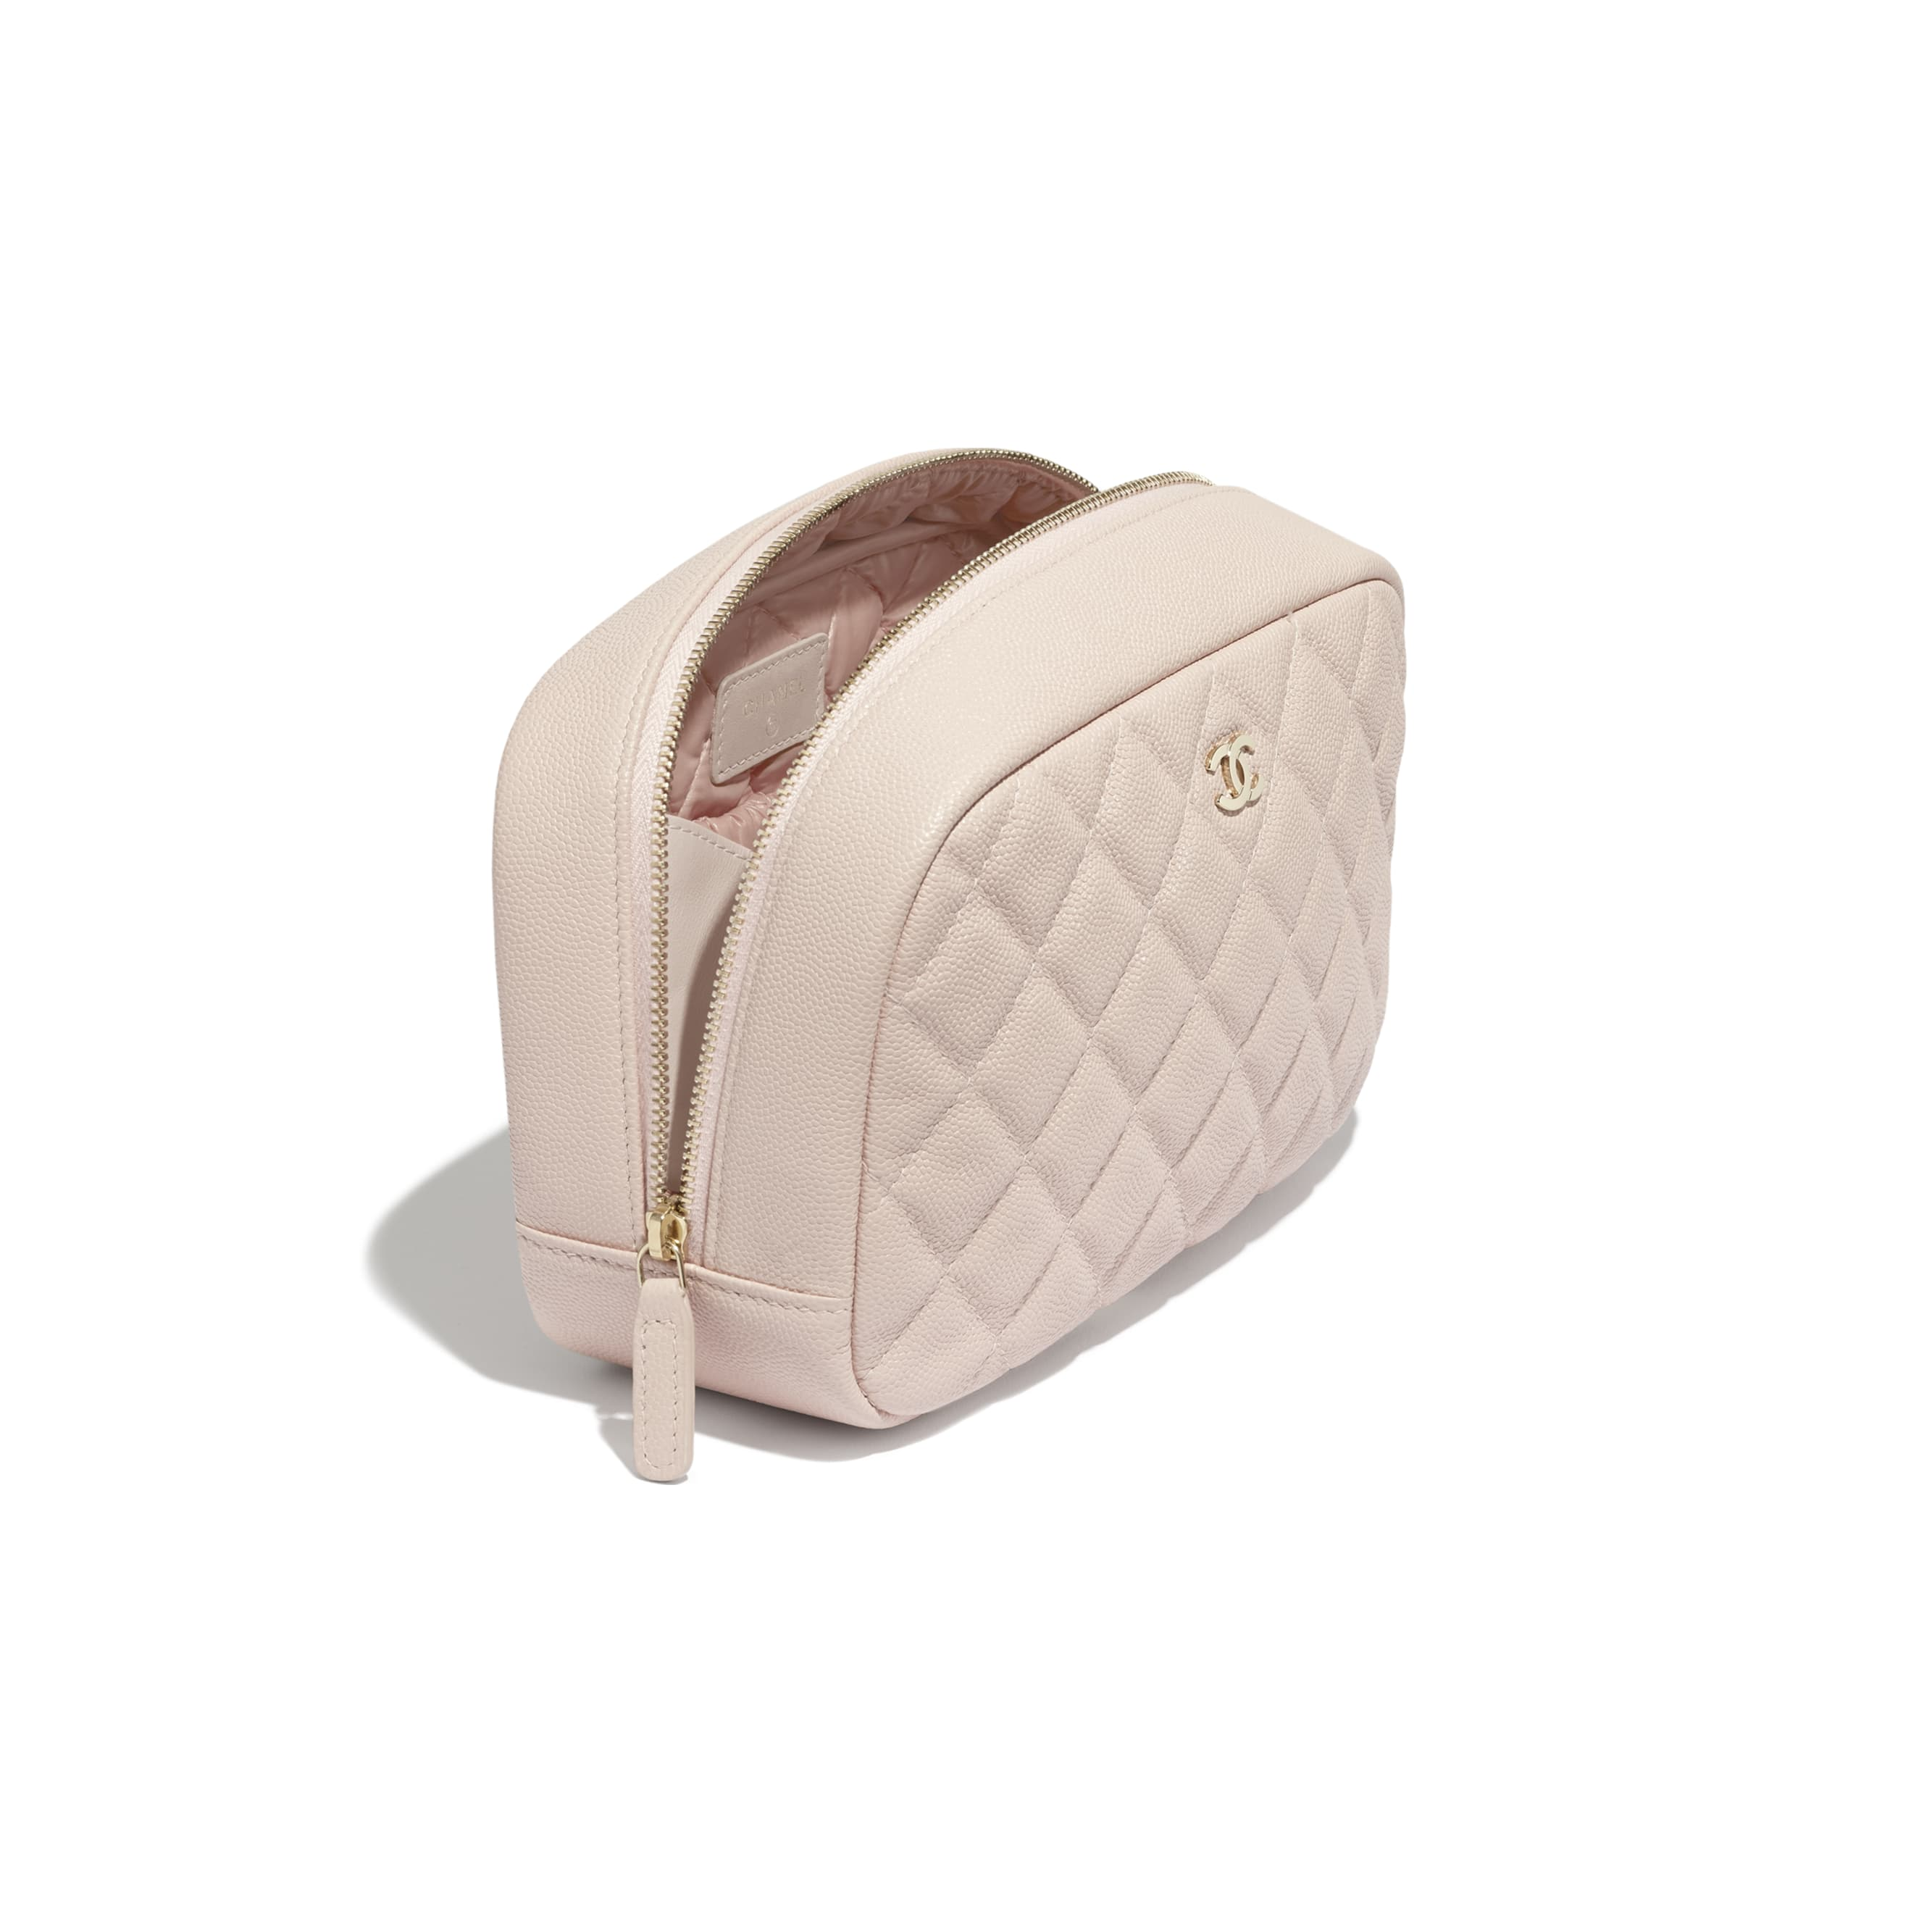 Classic Case - Pale Pink - Grained Shiny Calfskin & Gold-Tone Metal - CHANEL - Other view - see standard sized version